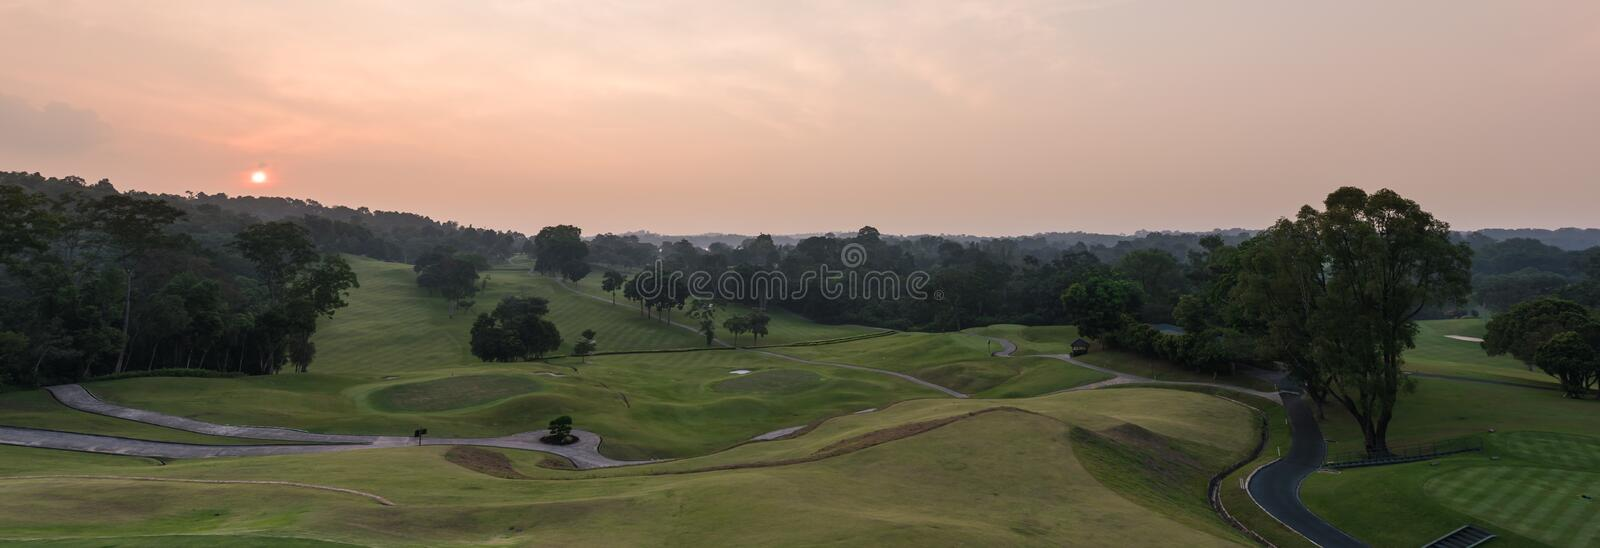 Coucher du soleil au terrain de golf photo stock